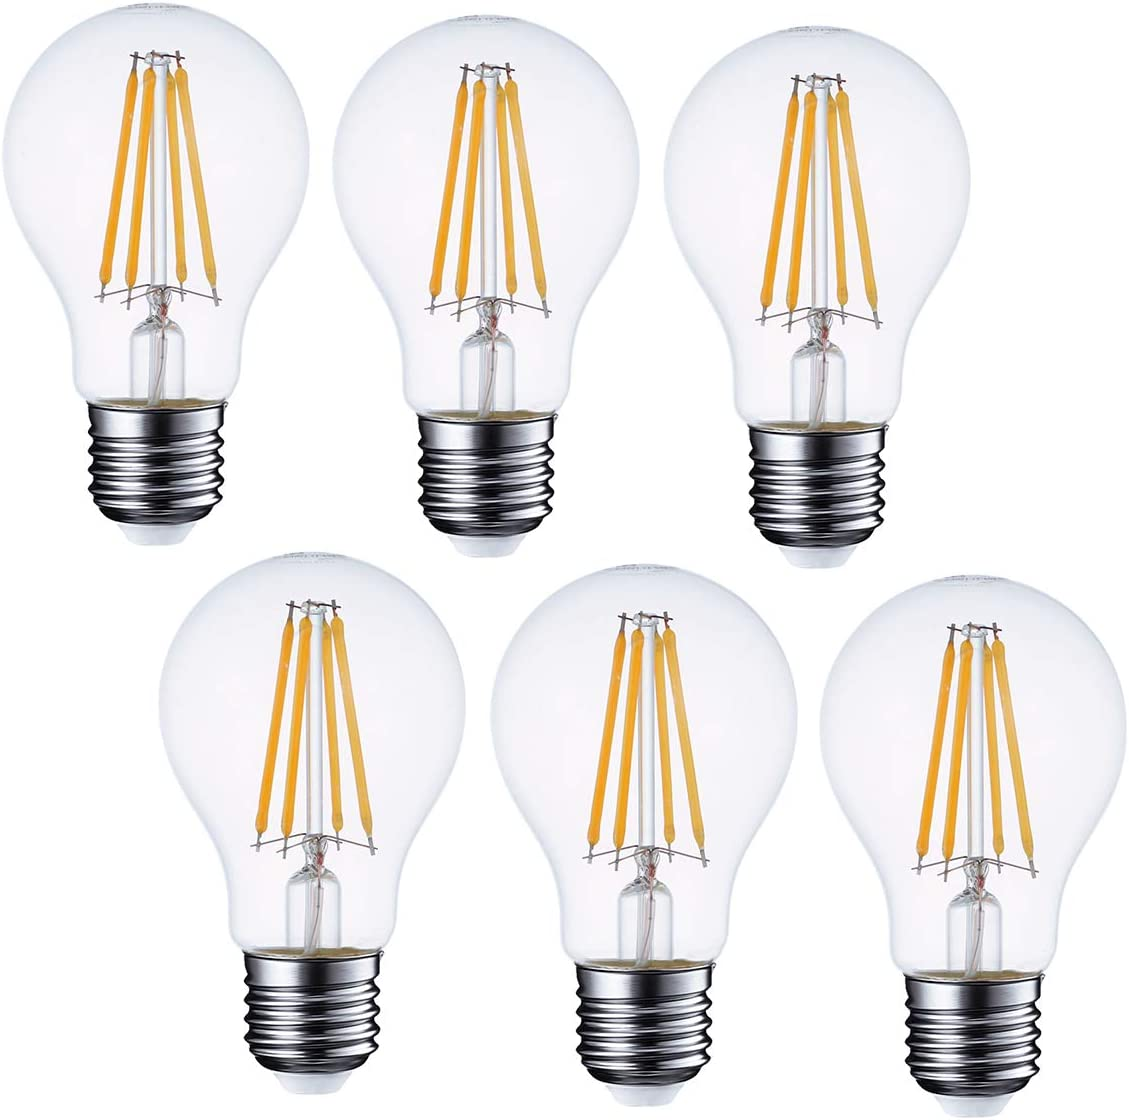 120V E26 Vintage LED Smart Bulb GMY Smart Light Bulb WiFi Dimmable A19 Smart Bulbs Compatible with Alexa 40W Equivalent Soft White No Hub Required 2200K-5000K 2-Pack Google Home Assistant